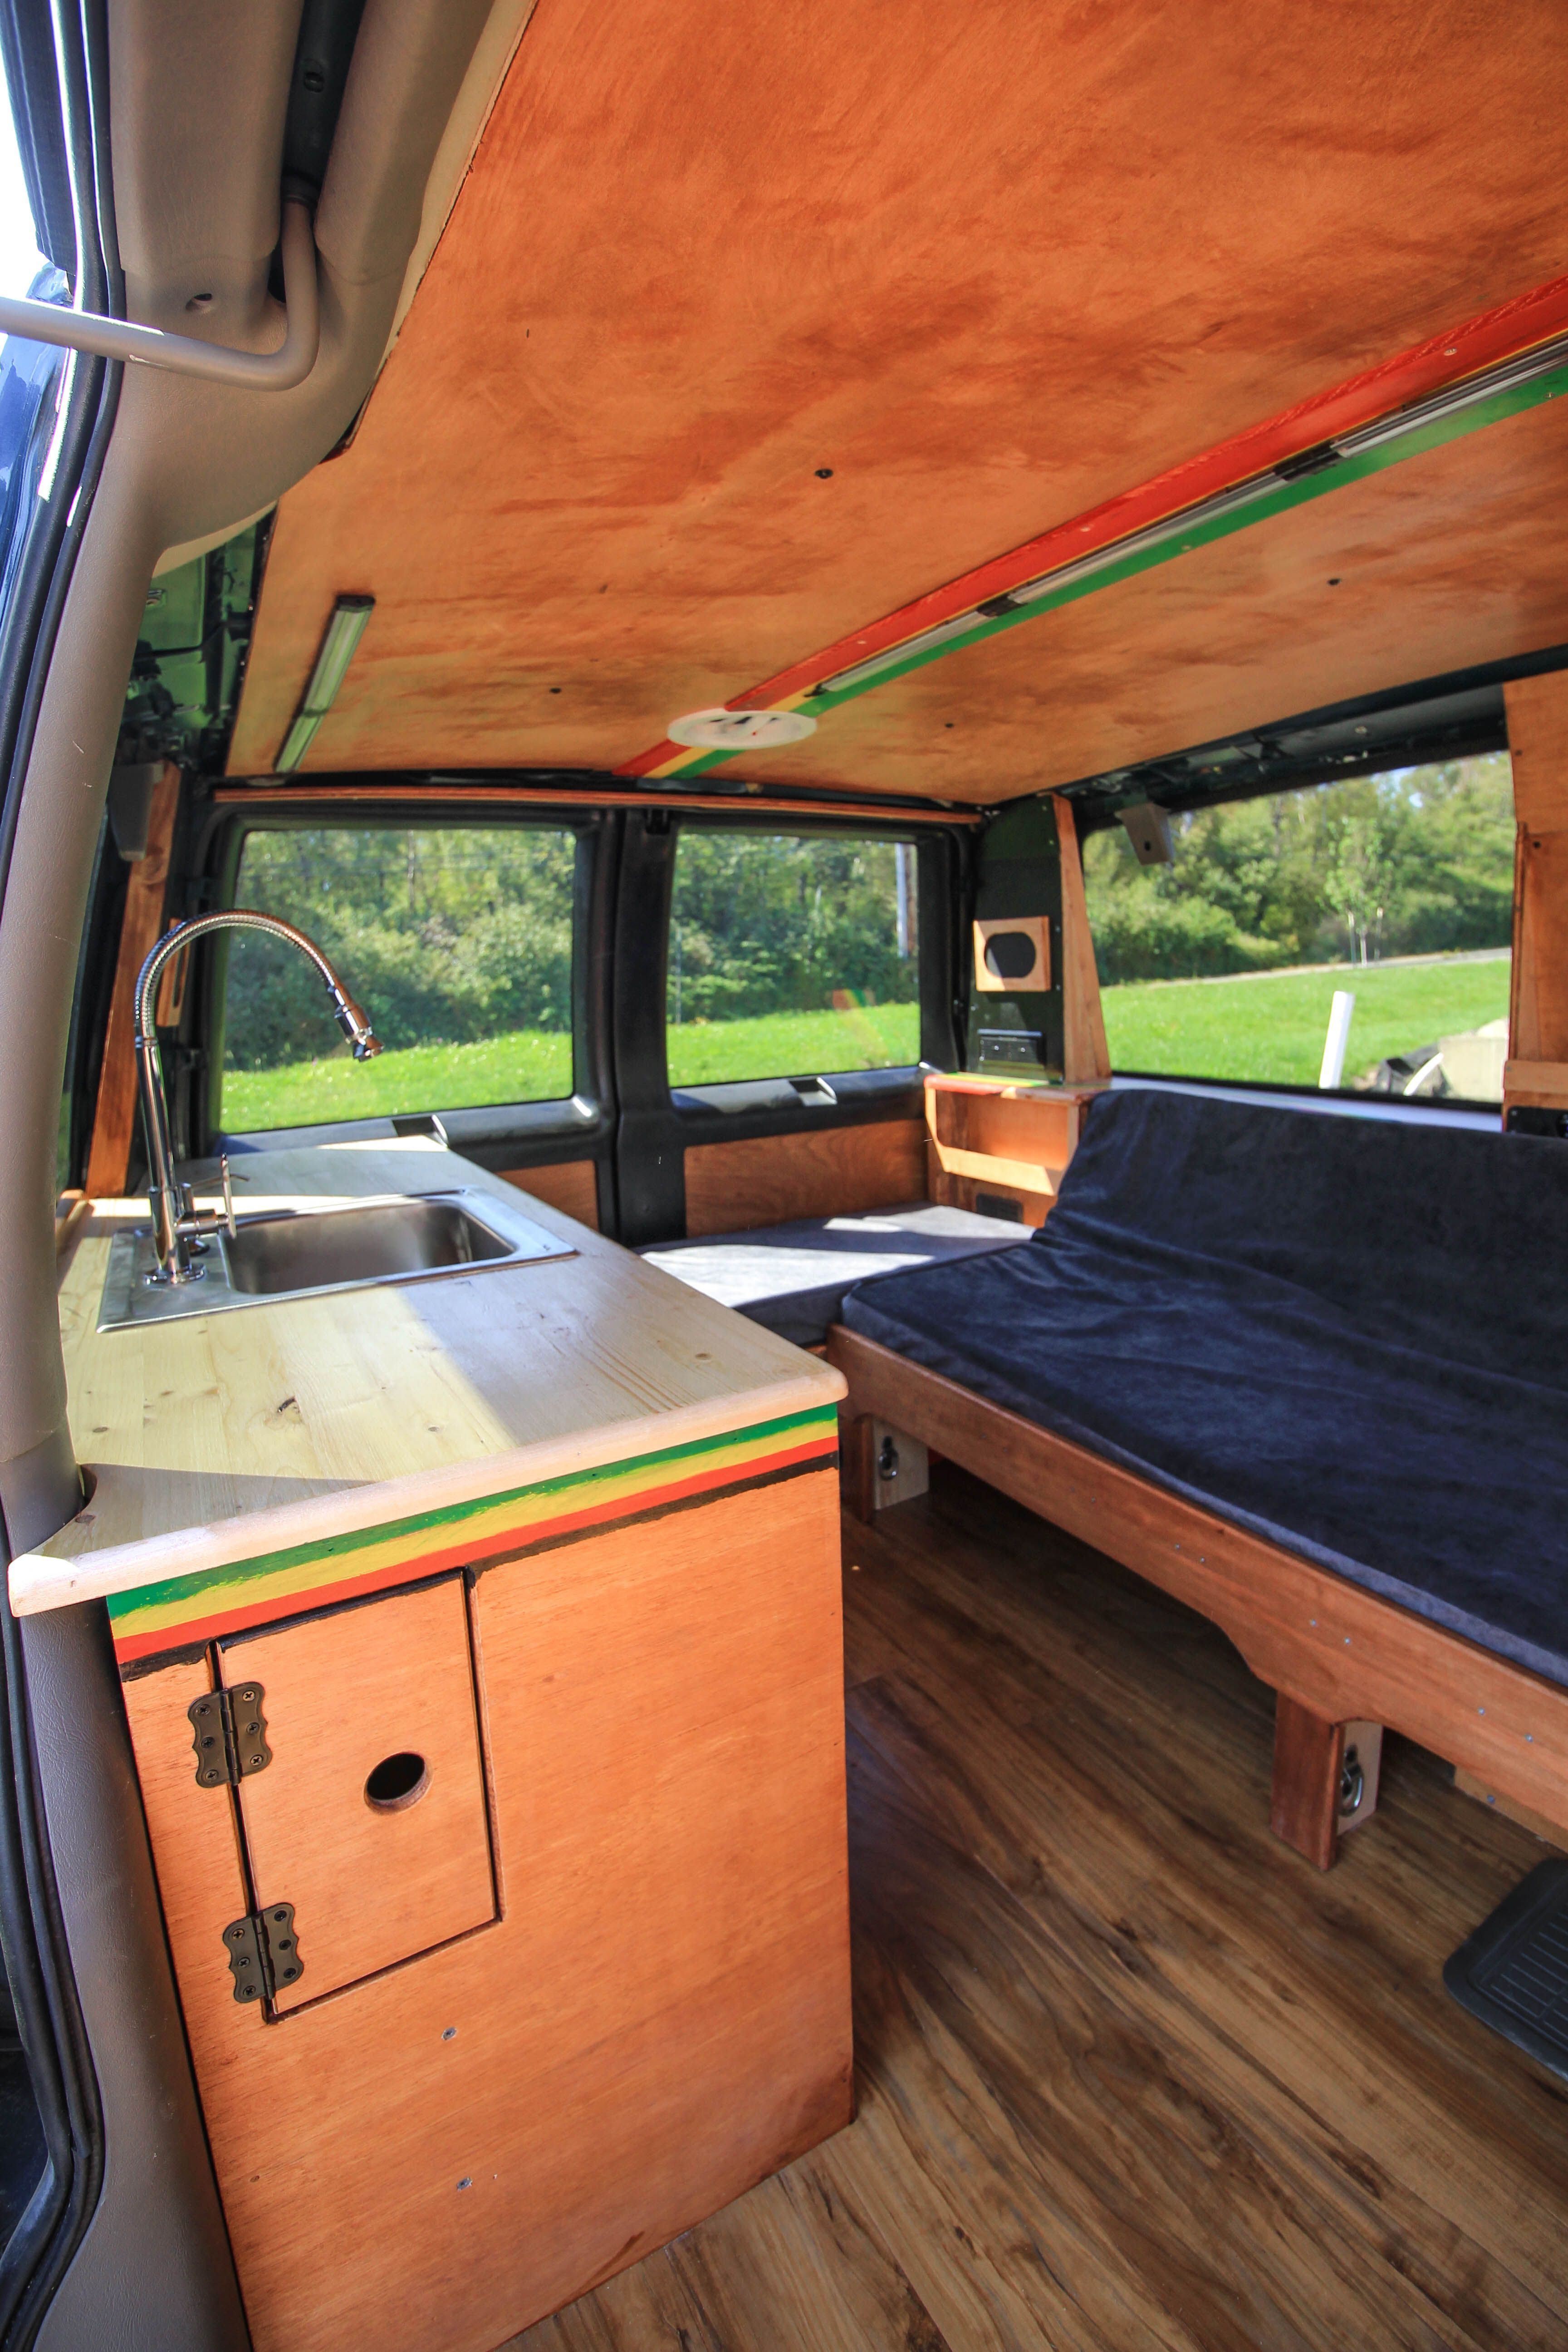 Could you live in an ultra-small space? Check out this rasta-themed Astro Van conversion by Freedom Vans! #van #vanlife #smallspace #tinyhouse #tinyhome #tinyliving #astrovan #chevyastro #kitchen #kitchenette #freedomvans #vanconversion #convertedvan #convertedastro